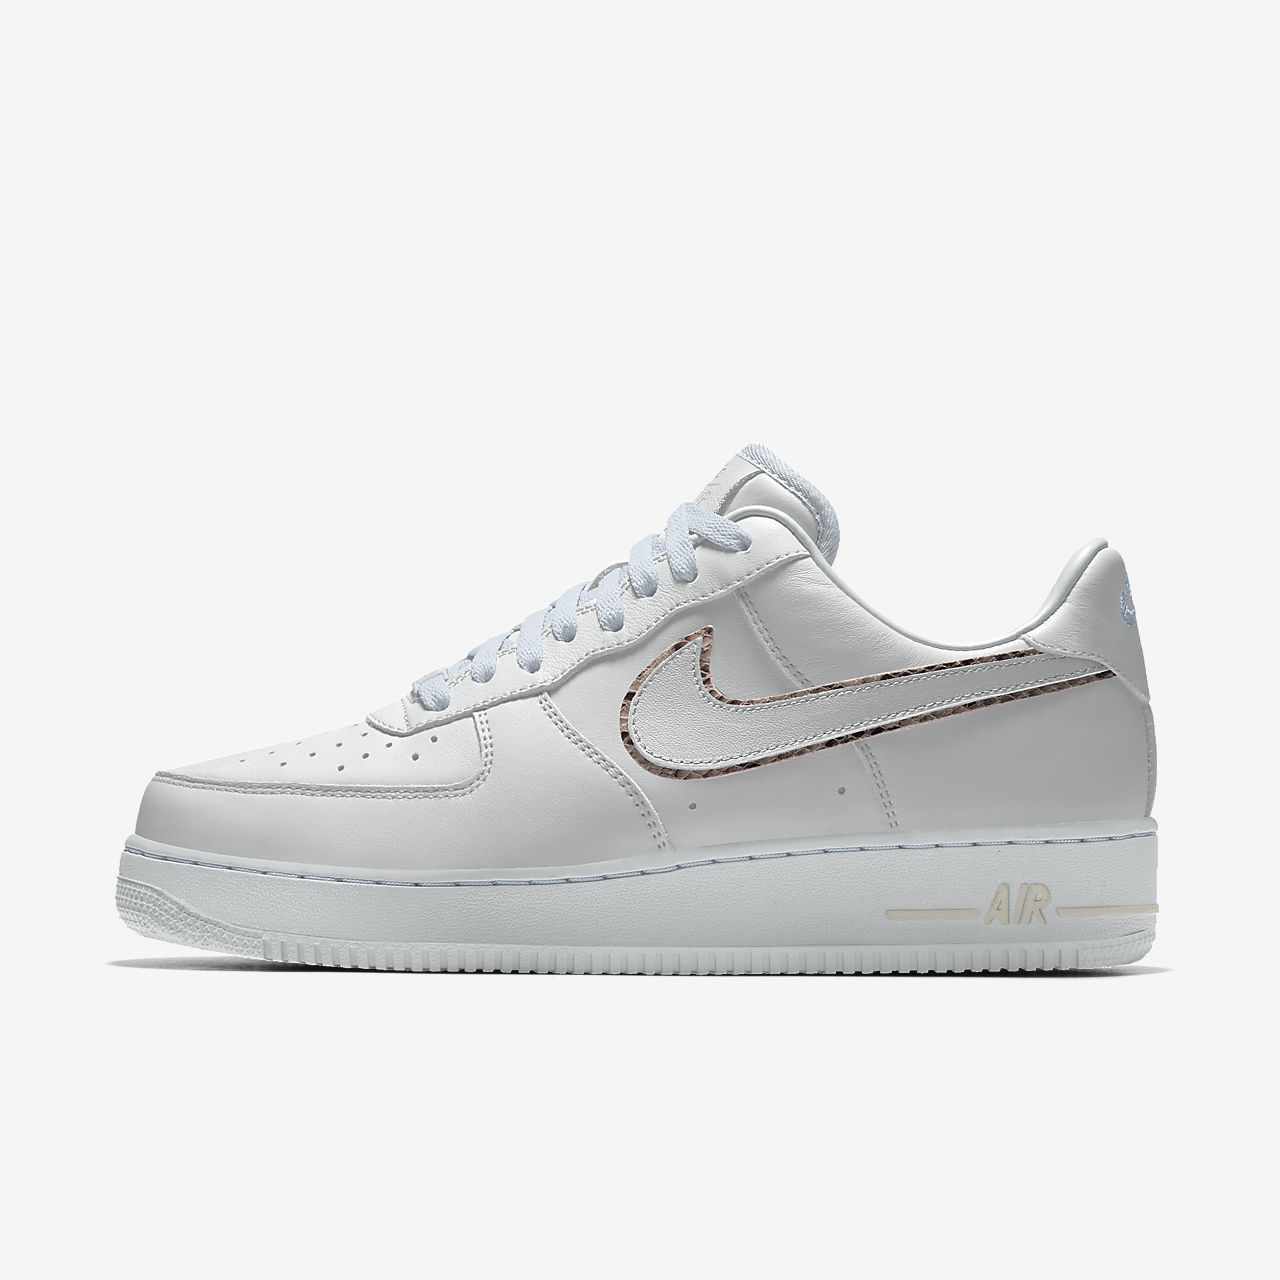 Nike Air Force 1 Low Unlocked By You personalisierbarer Damenschuh